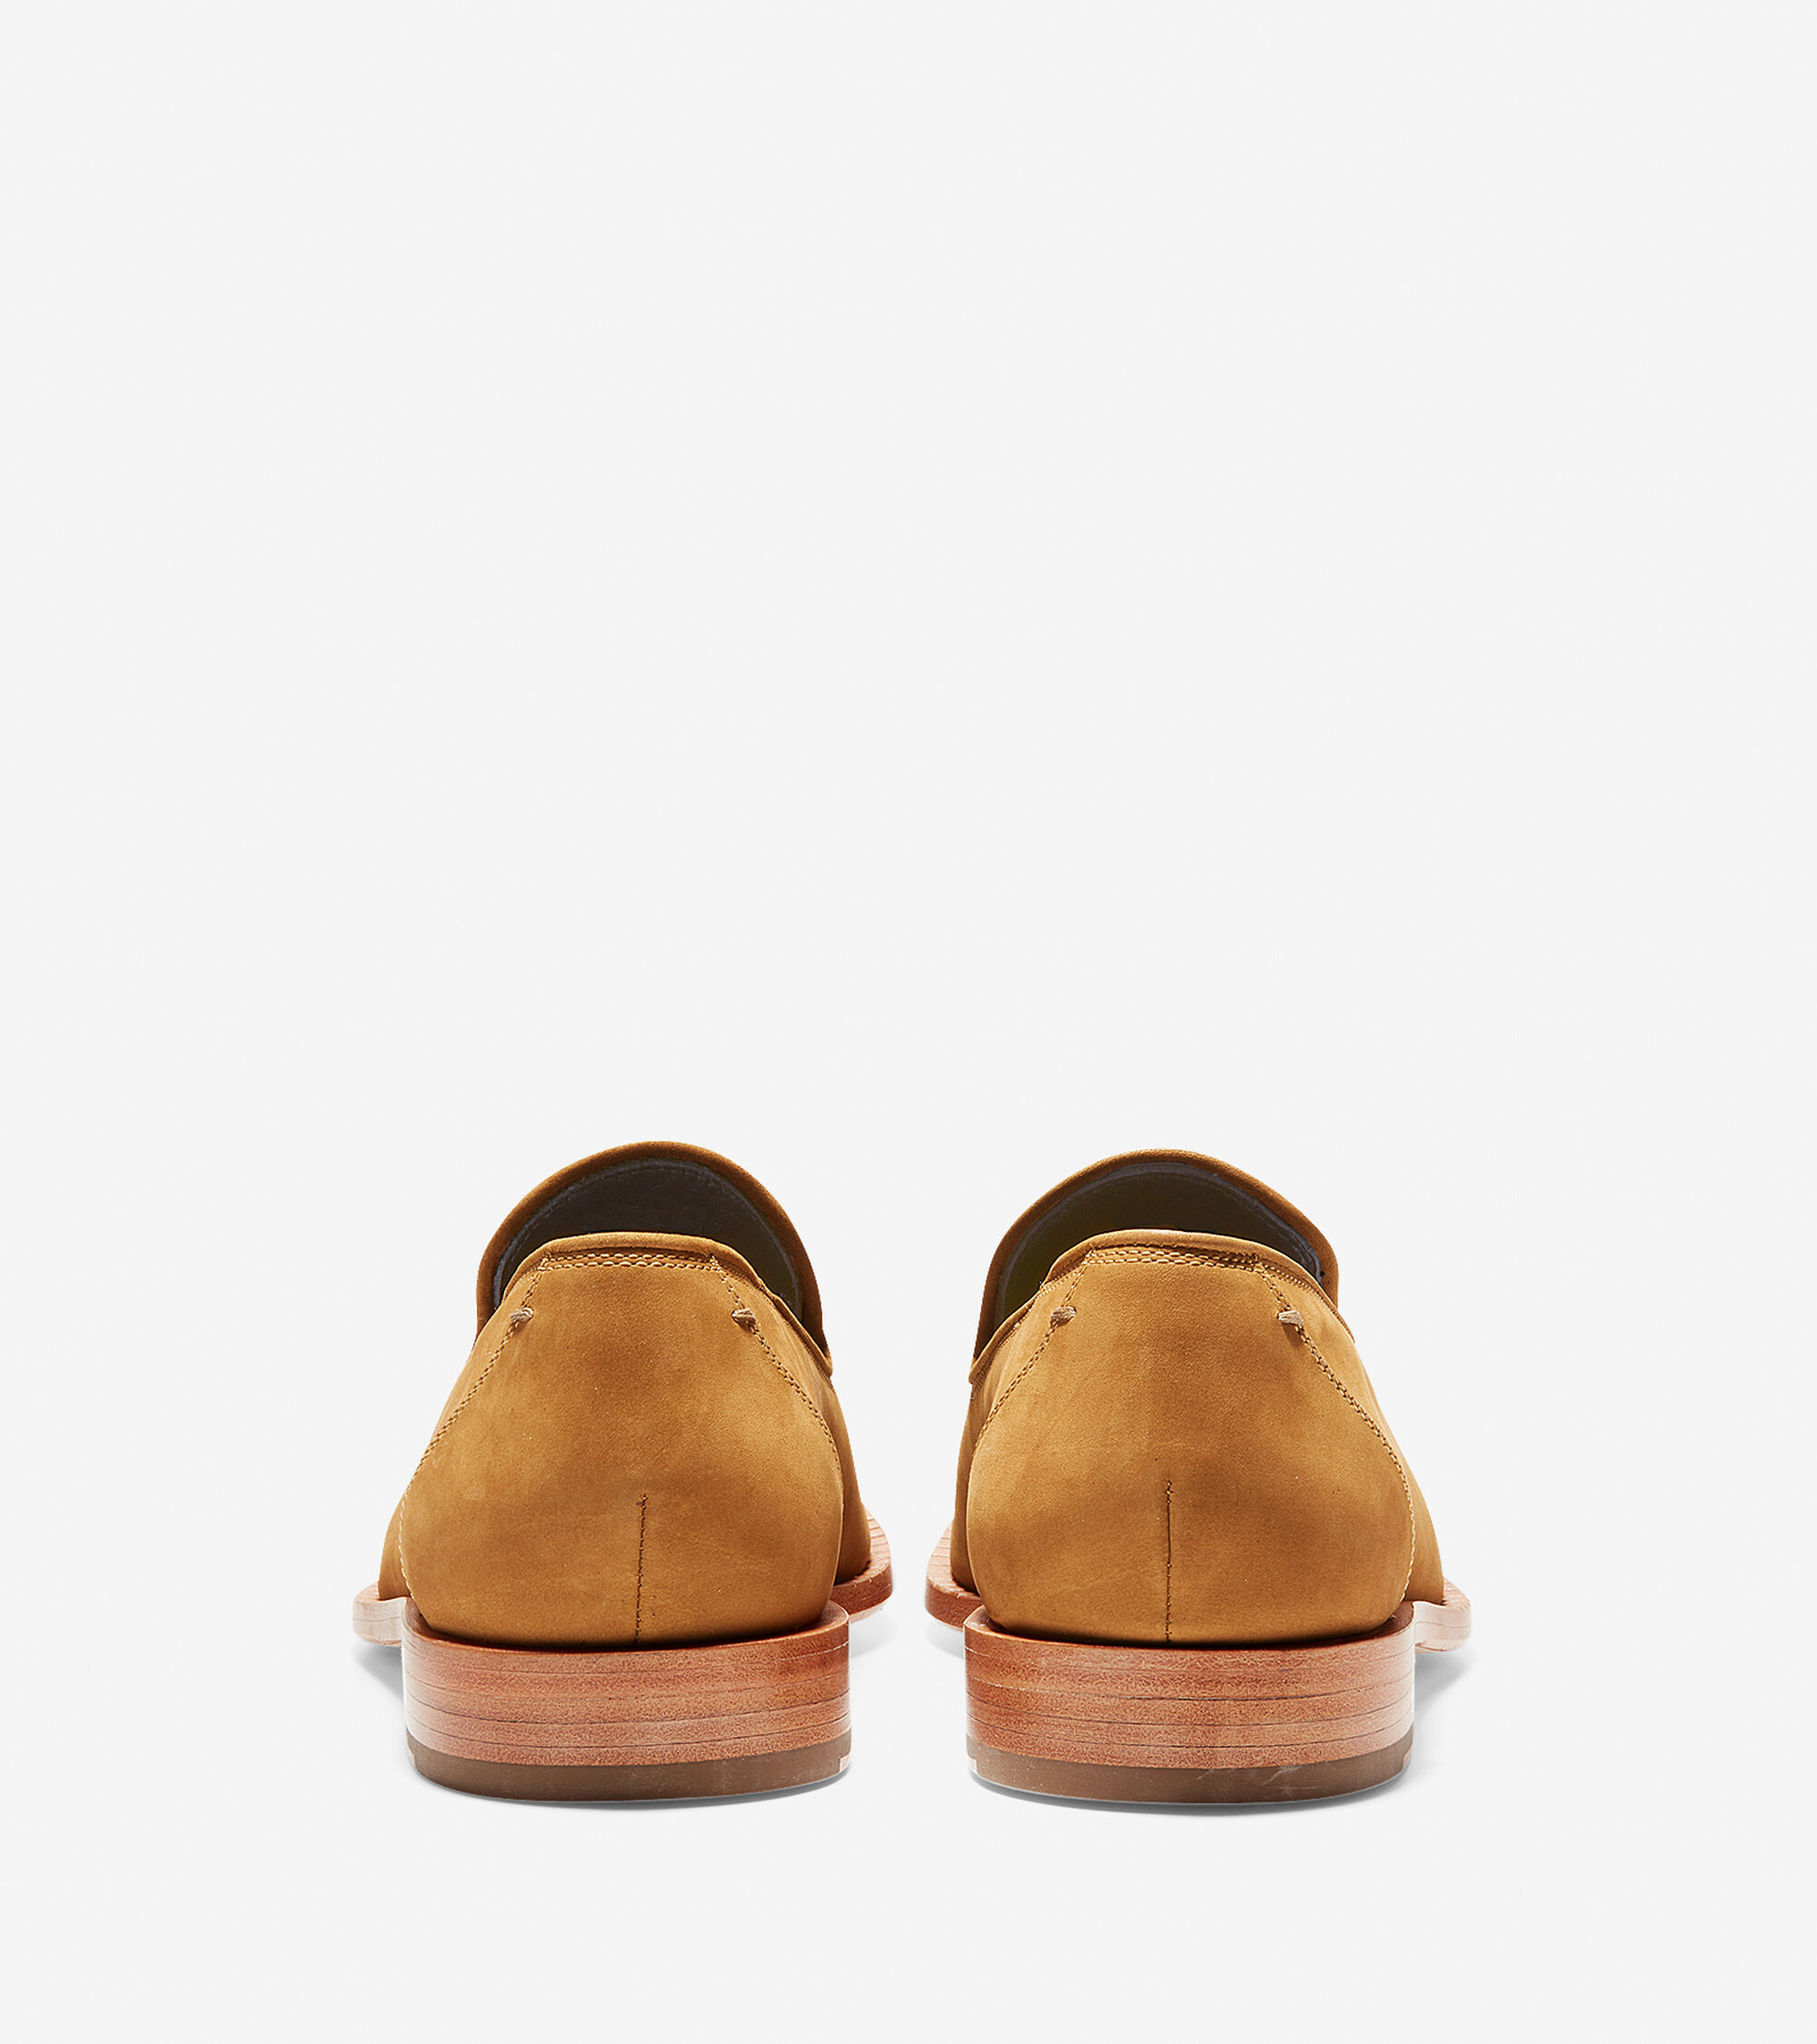 61bfd3af09b Men s Washington Grand Tassel Loafers in Cathay Spice